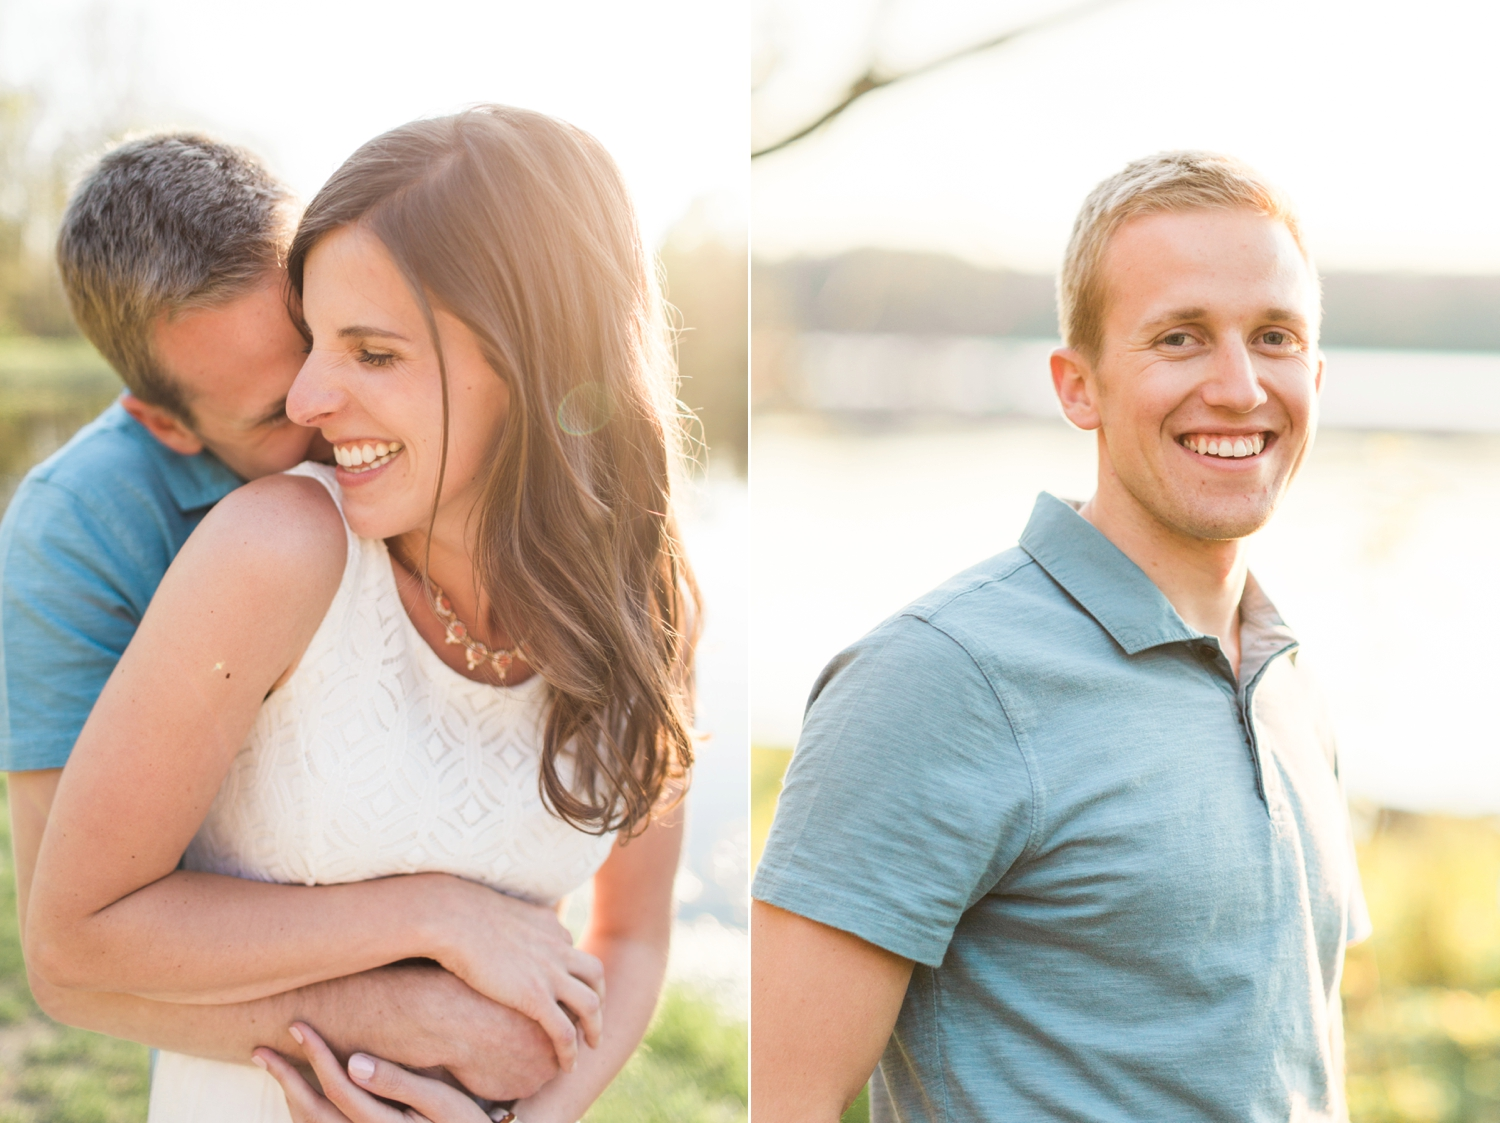 indianapolis_indiana_wedding_photographer_eagle_creek_engagement_chloe_luka_photography_6376.jpg